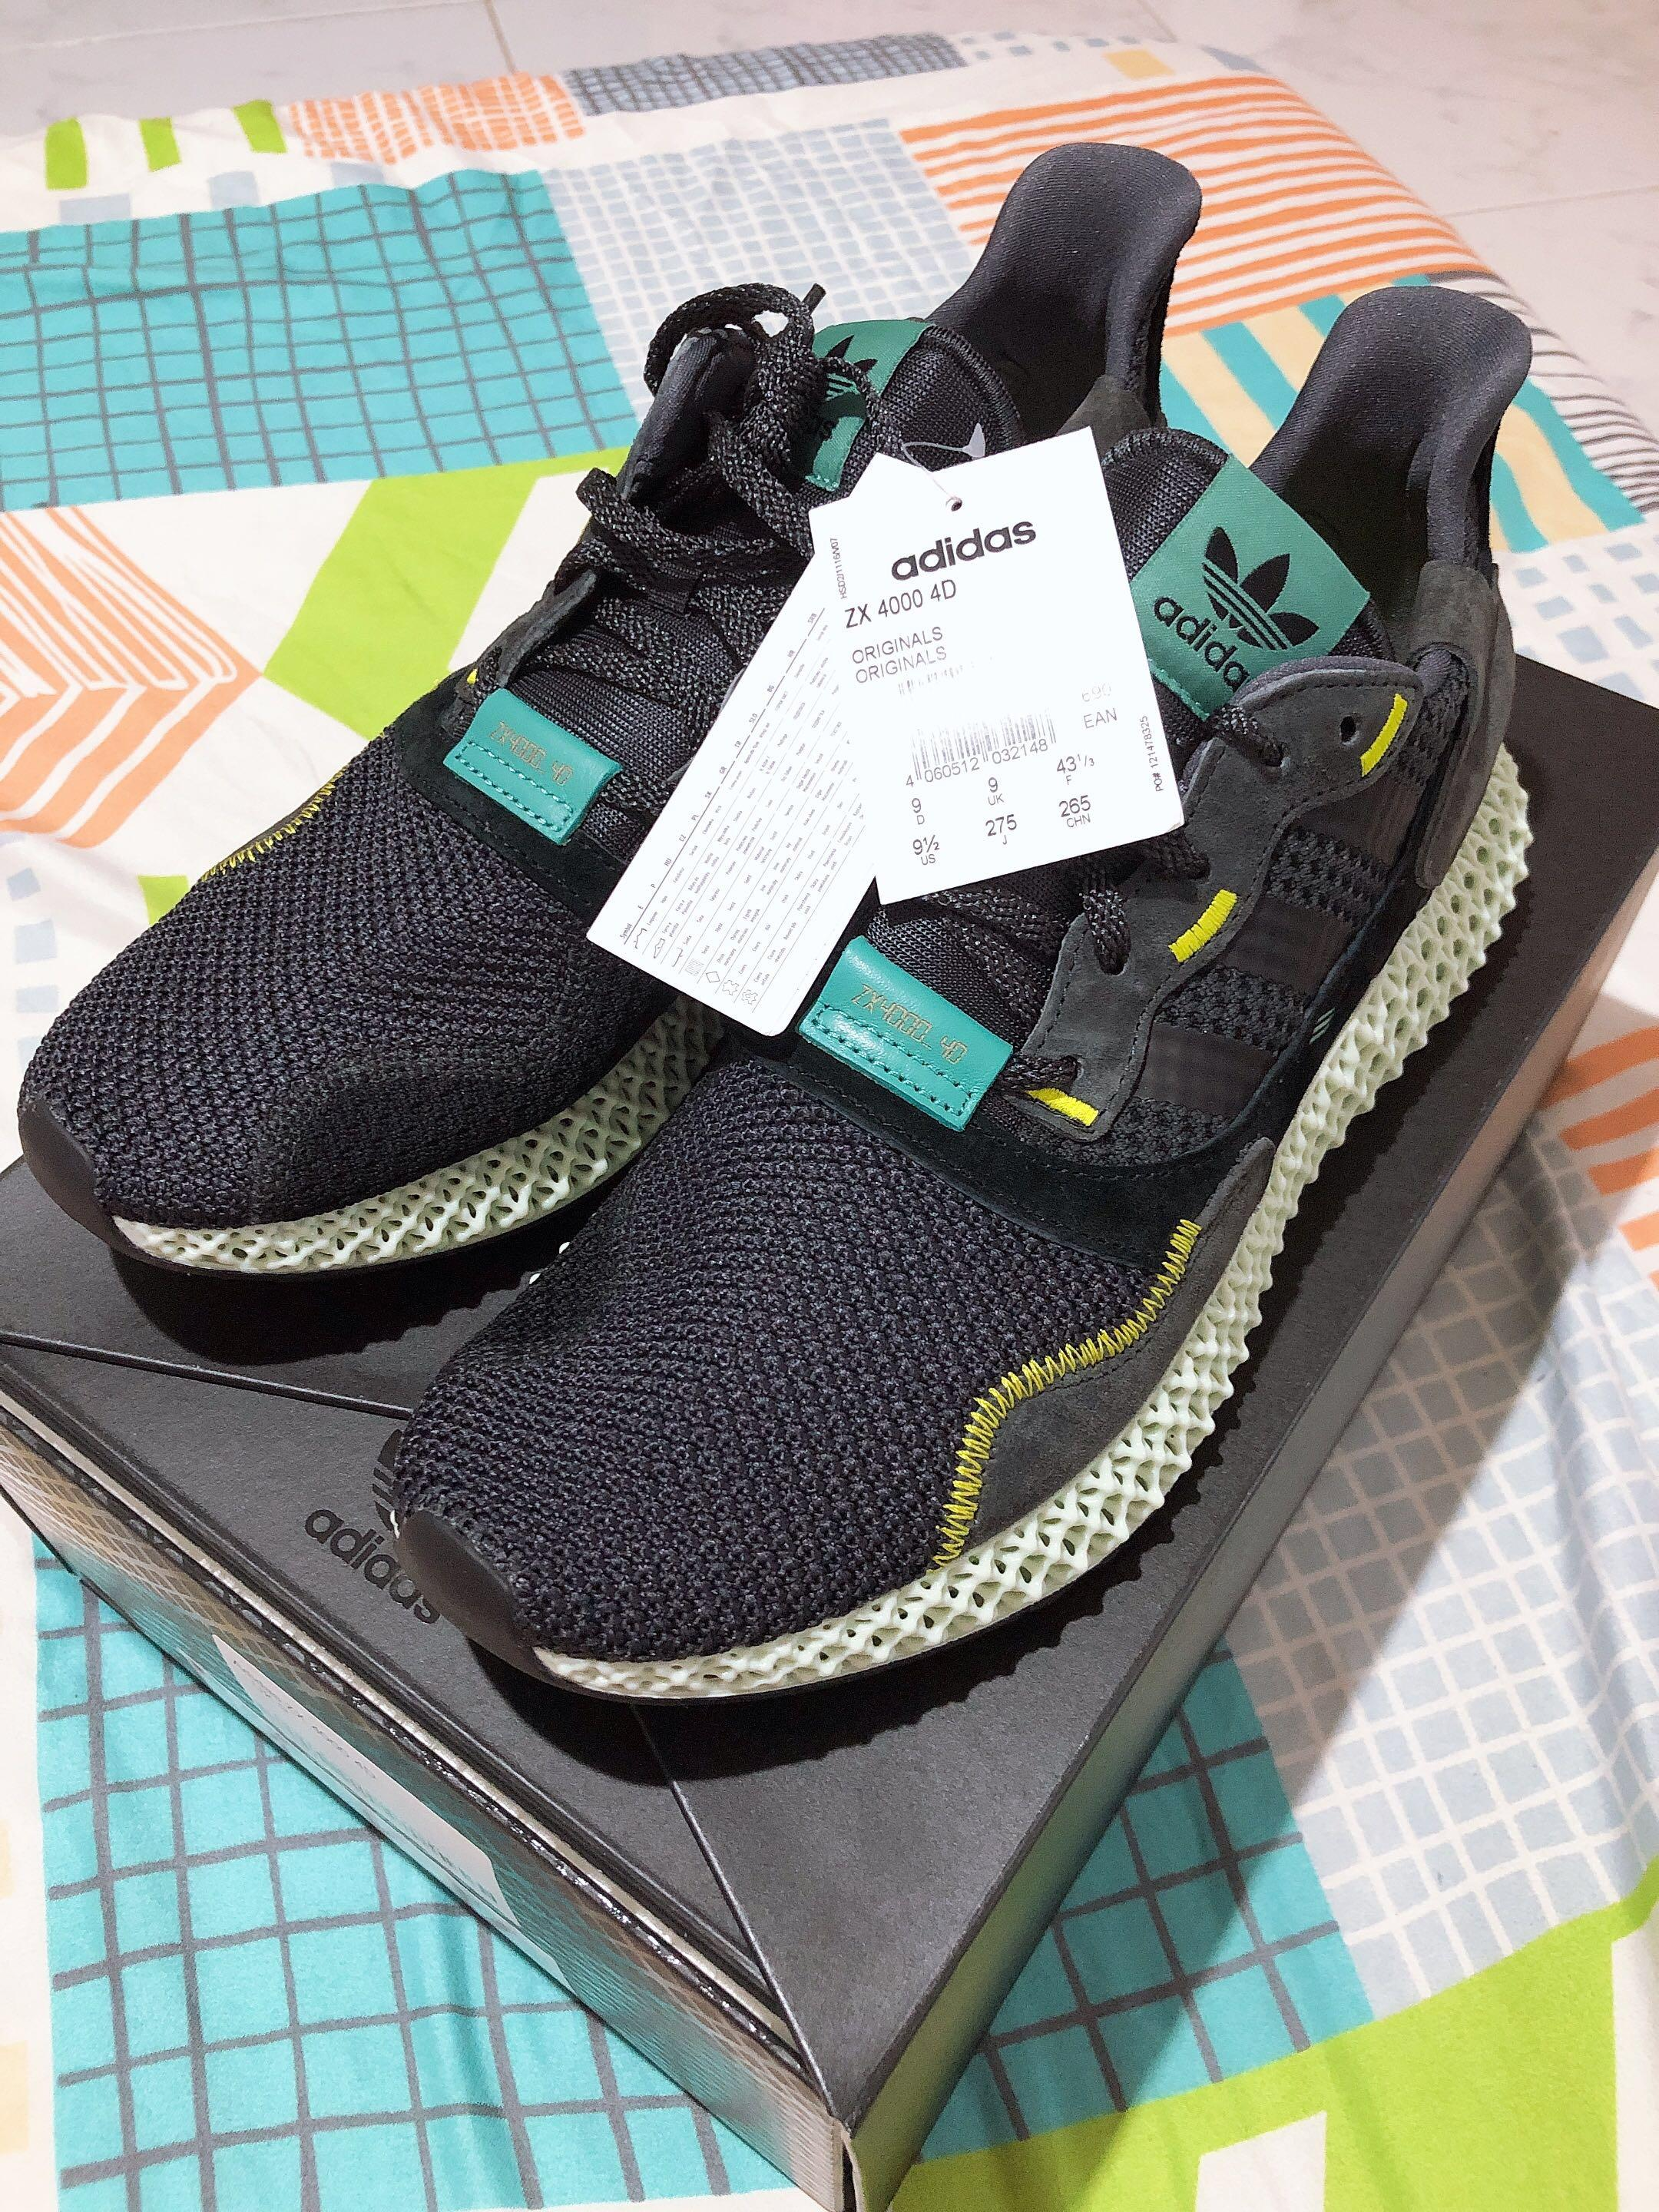 check out a331b c18d6 Adidas ZX 4000 4D US 9.5, Men's Fashion, Footwear, Sneakers ...